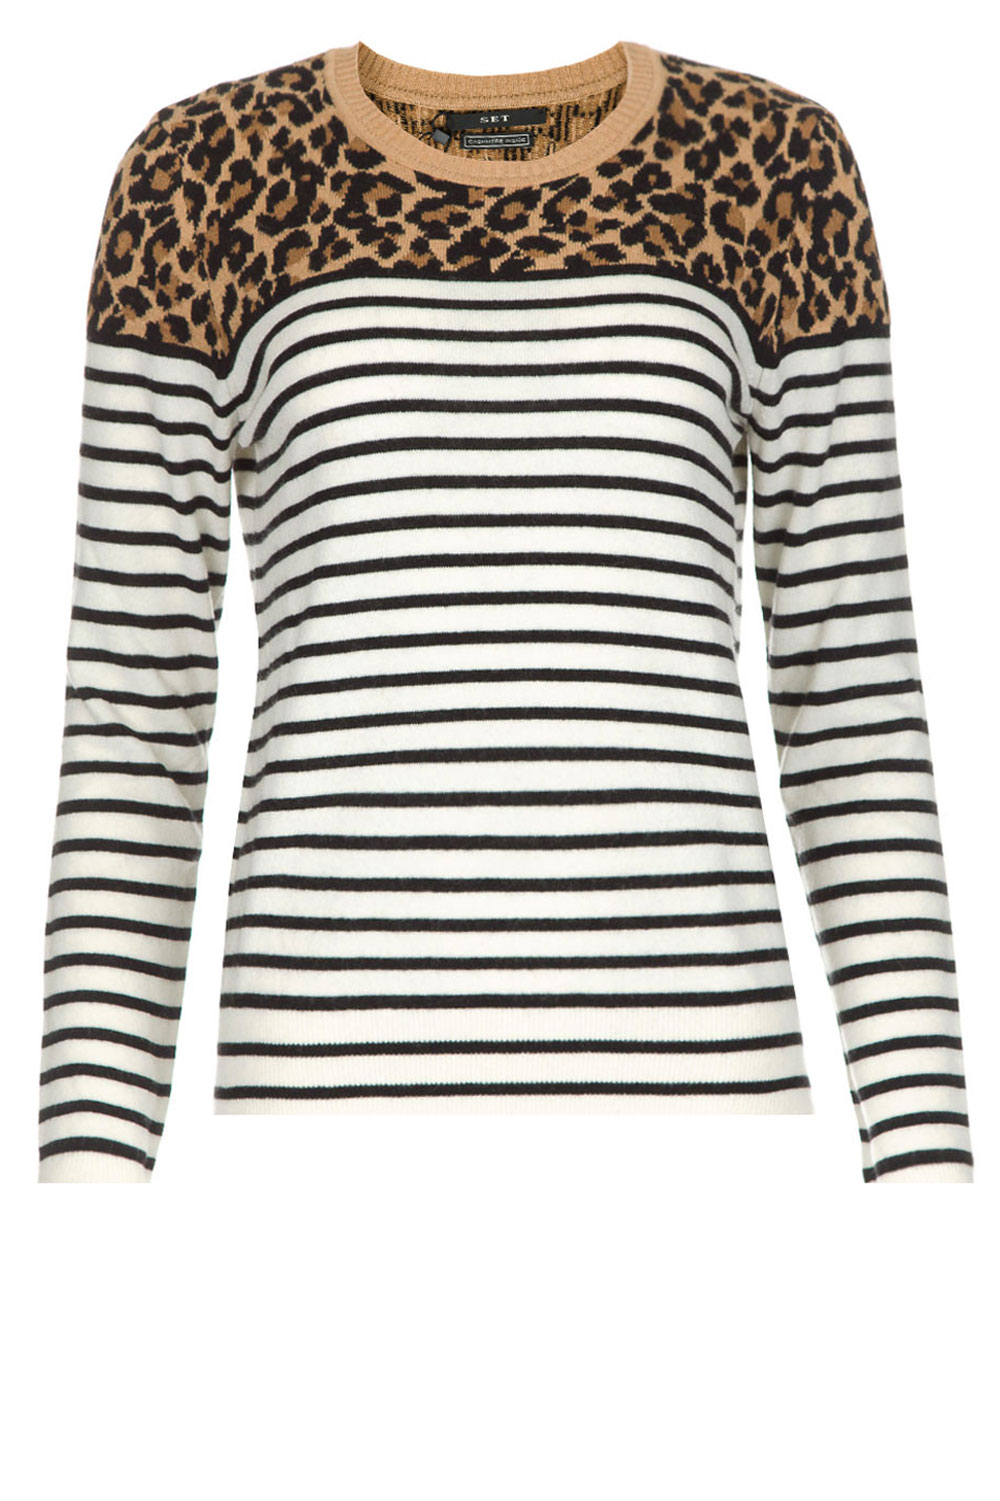 Trui Met Print.Striped Sweater With Panther Print Sailor Beige Set Little Soho